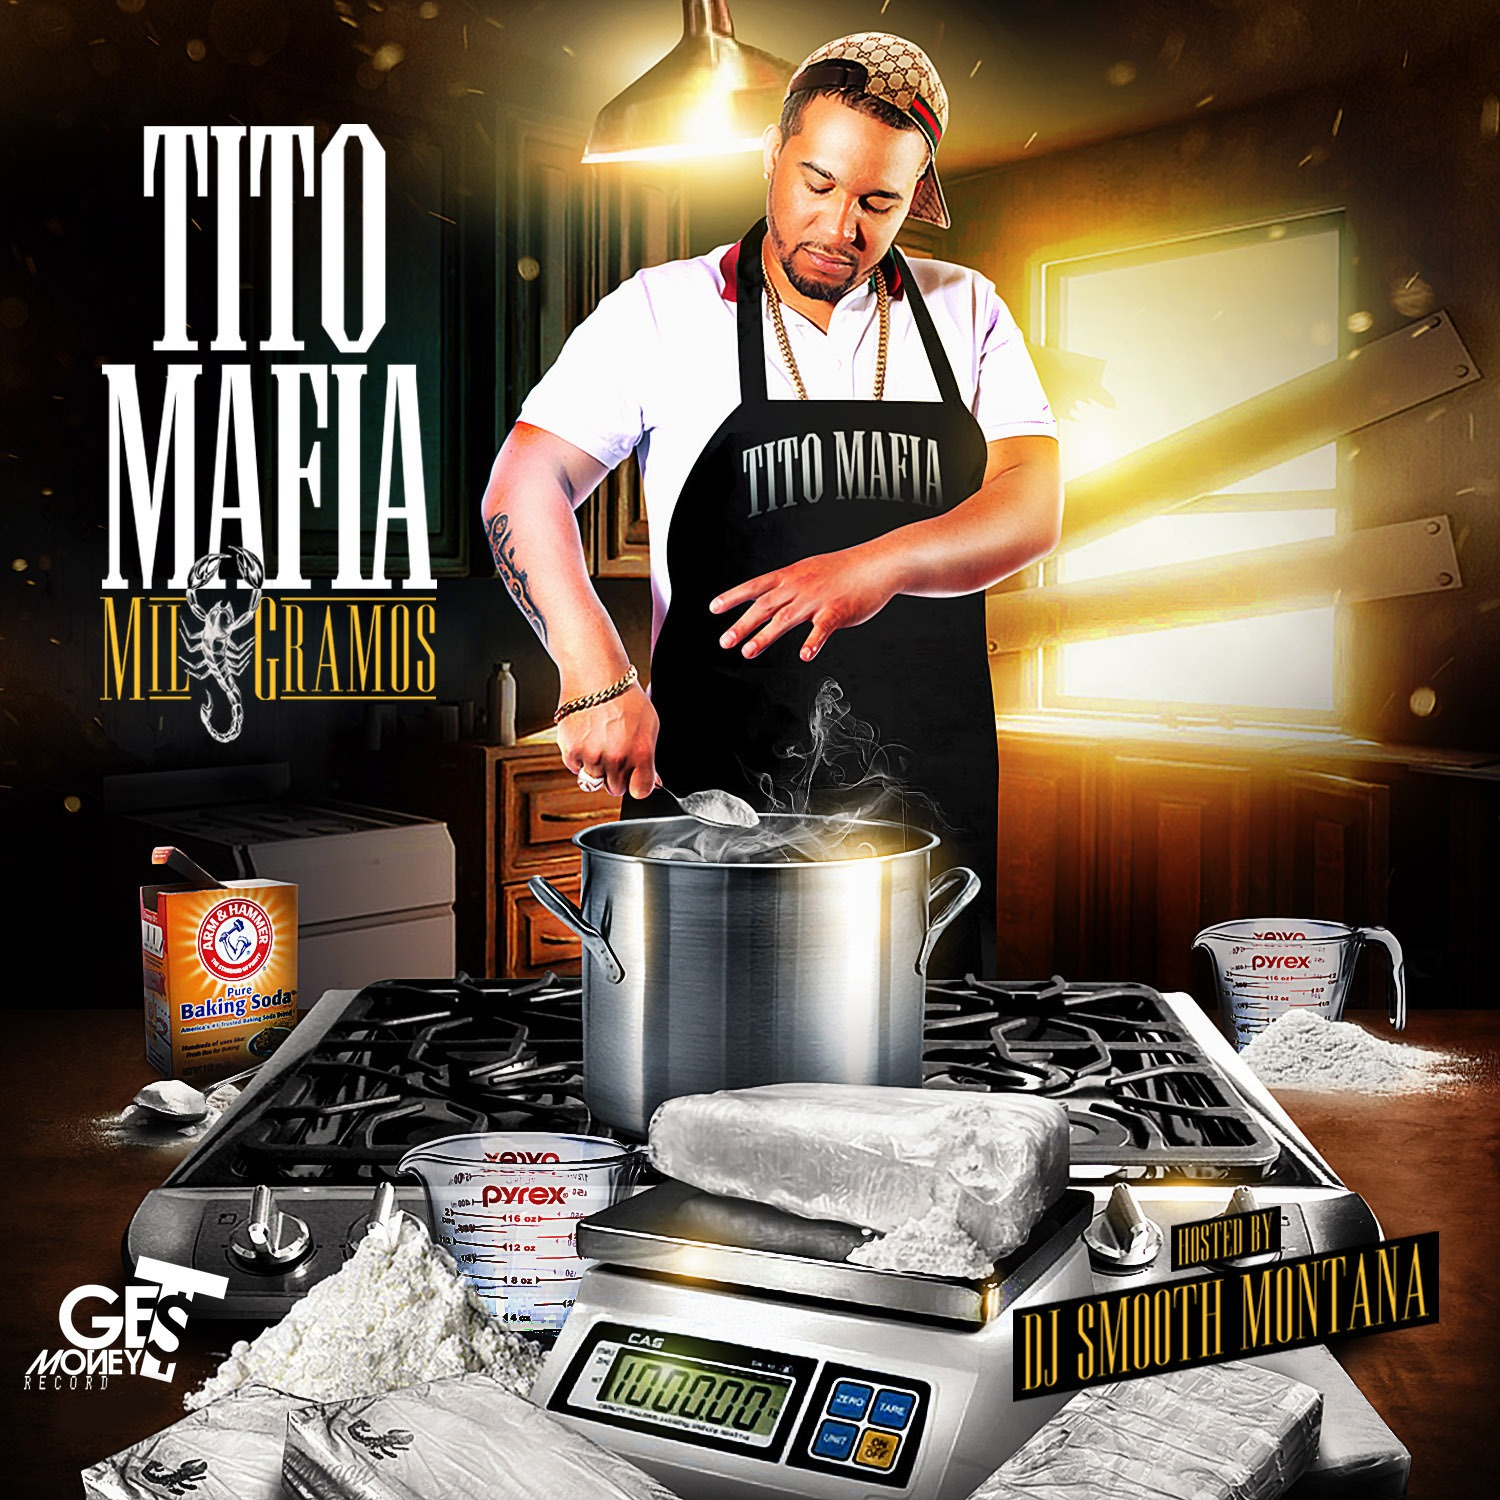 Tito Mafia – Mil Gramos (Vol.1 Hosted By Dj Smooth Montana)